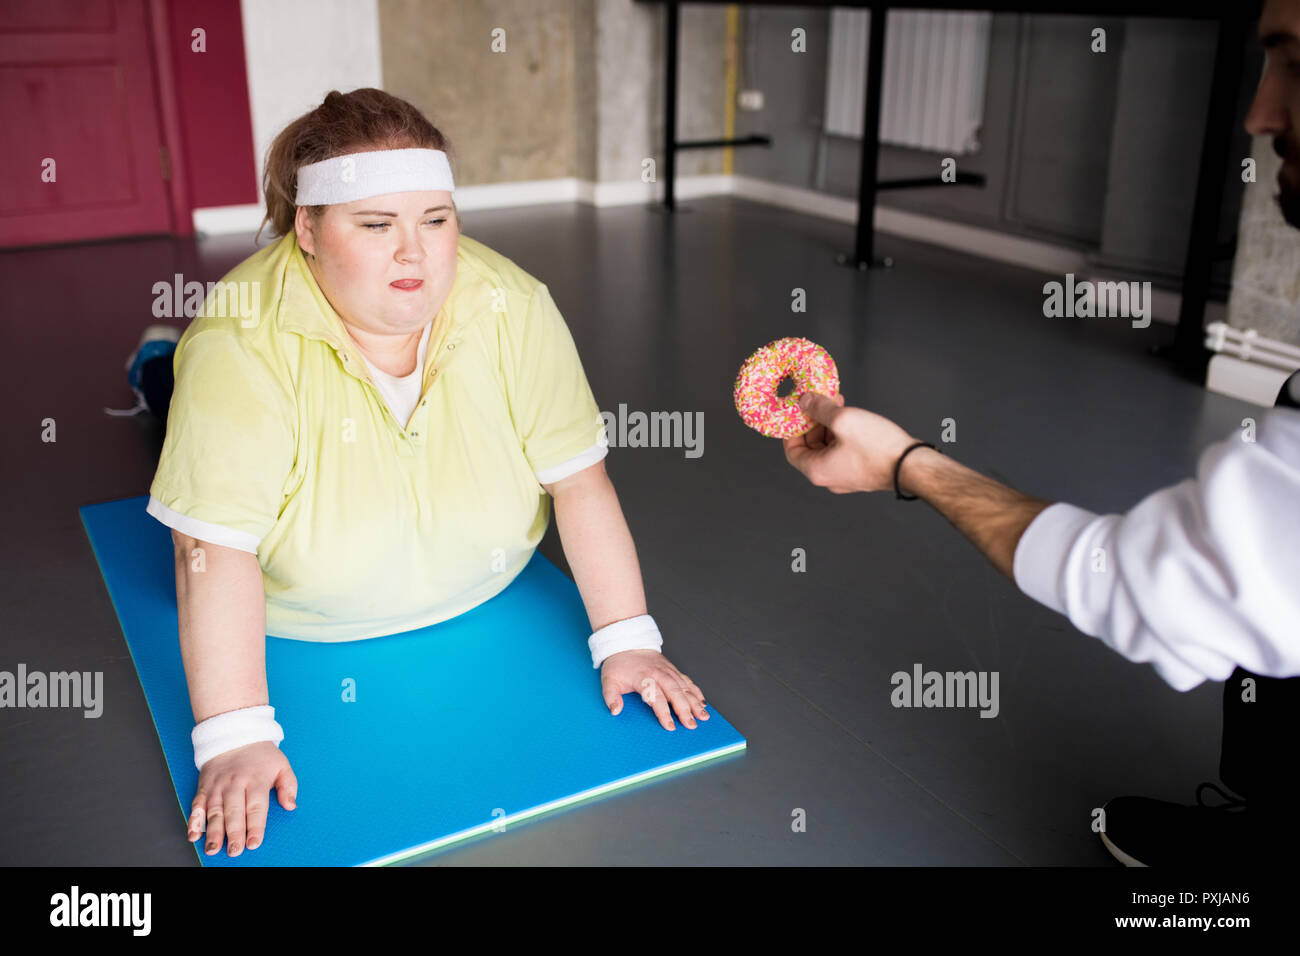 Obese Woman Fighting Food Obsession - Stock Image